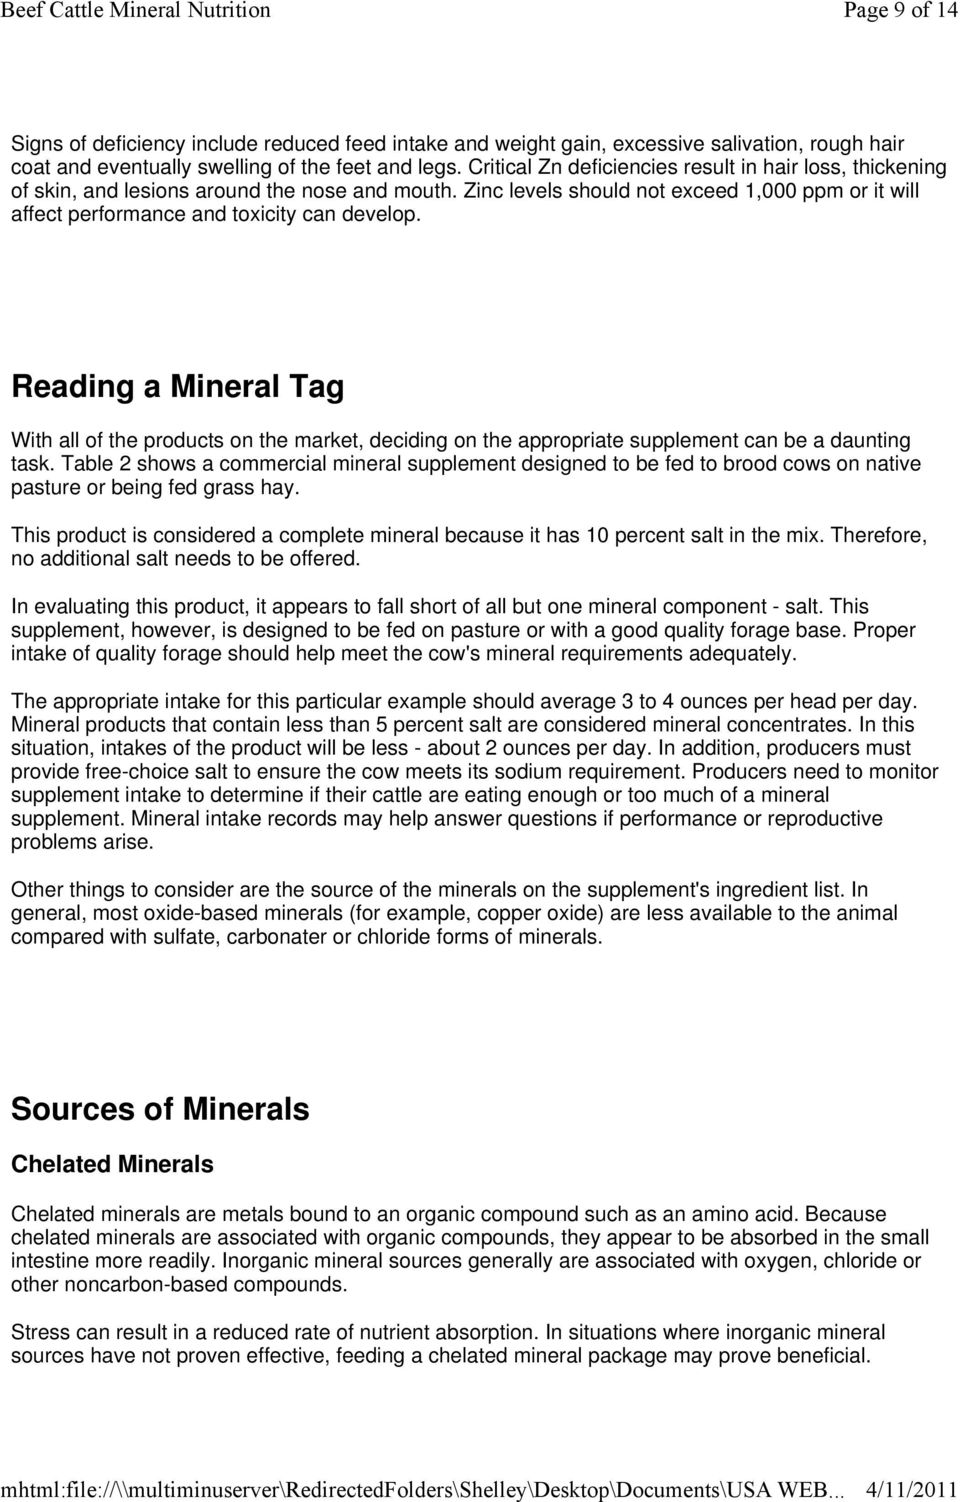 Beef Cattle Mineral Nutrition - PDF